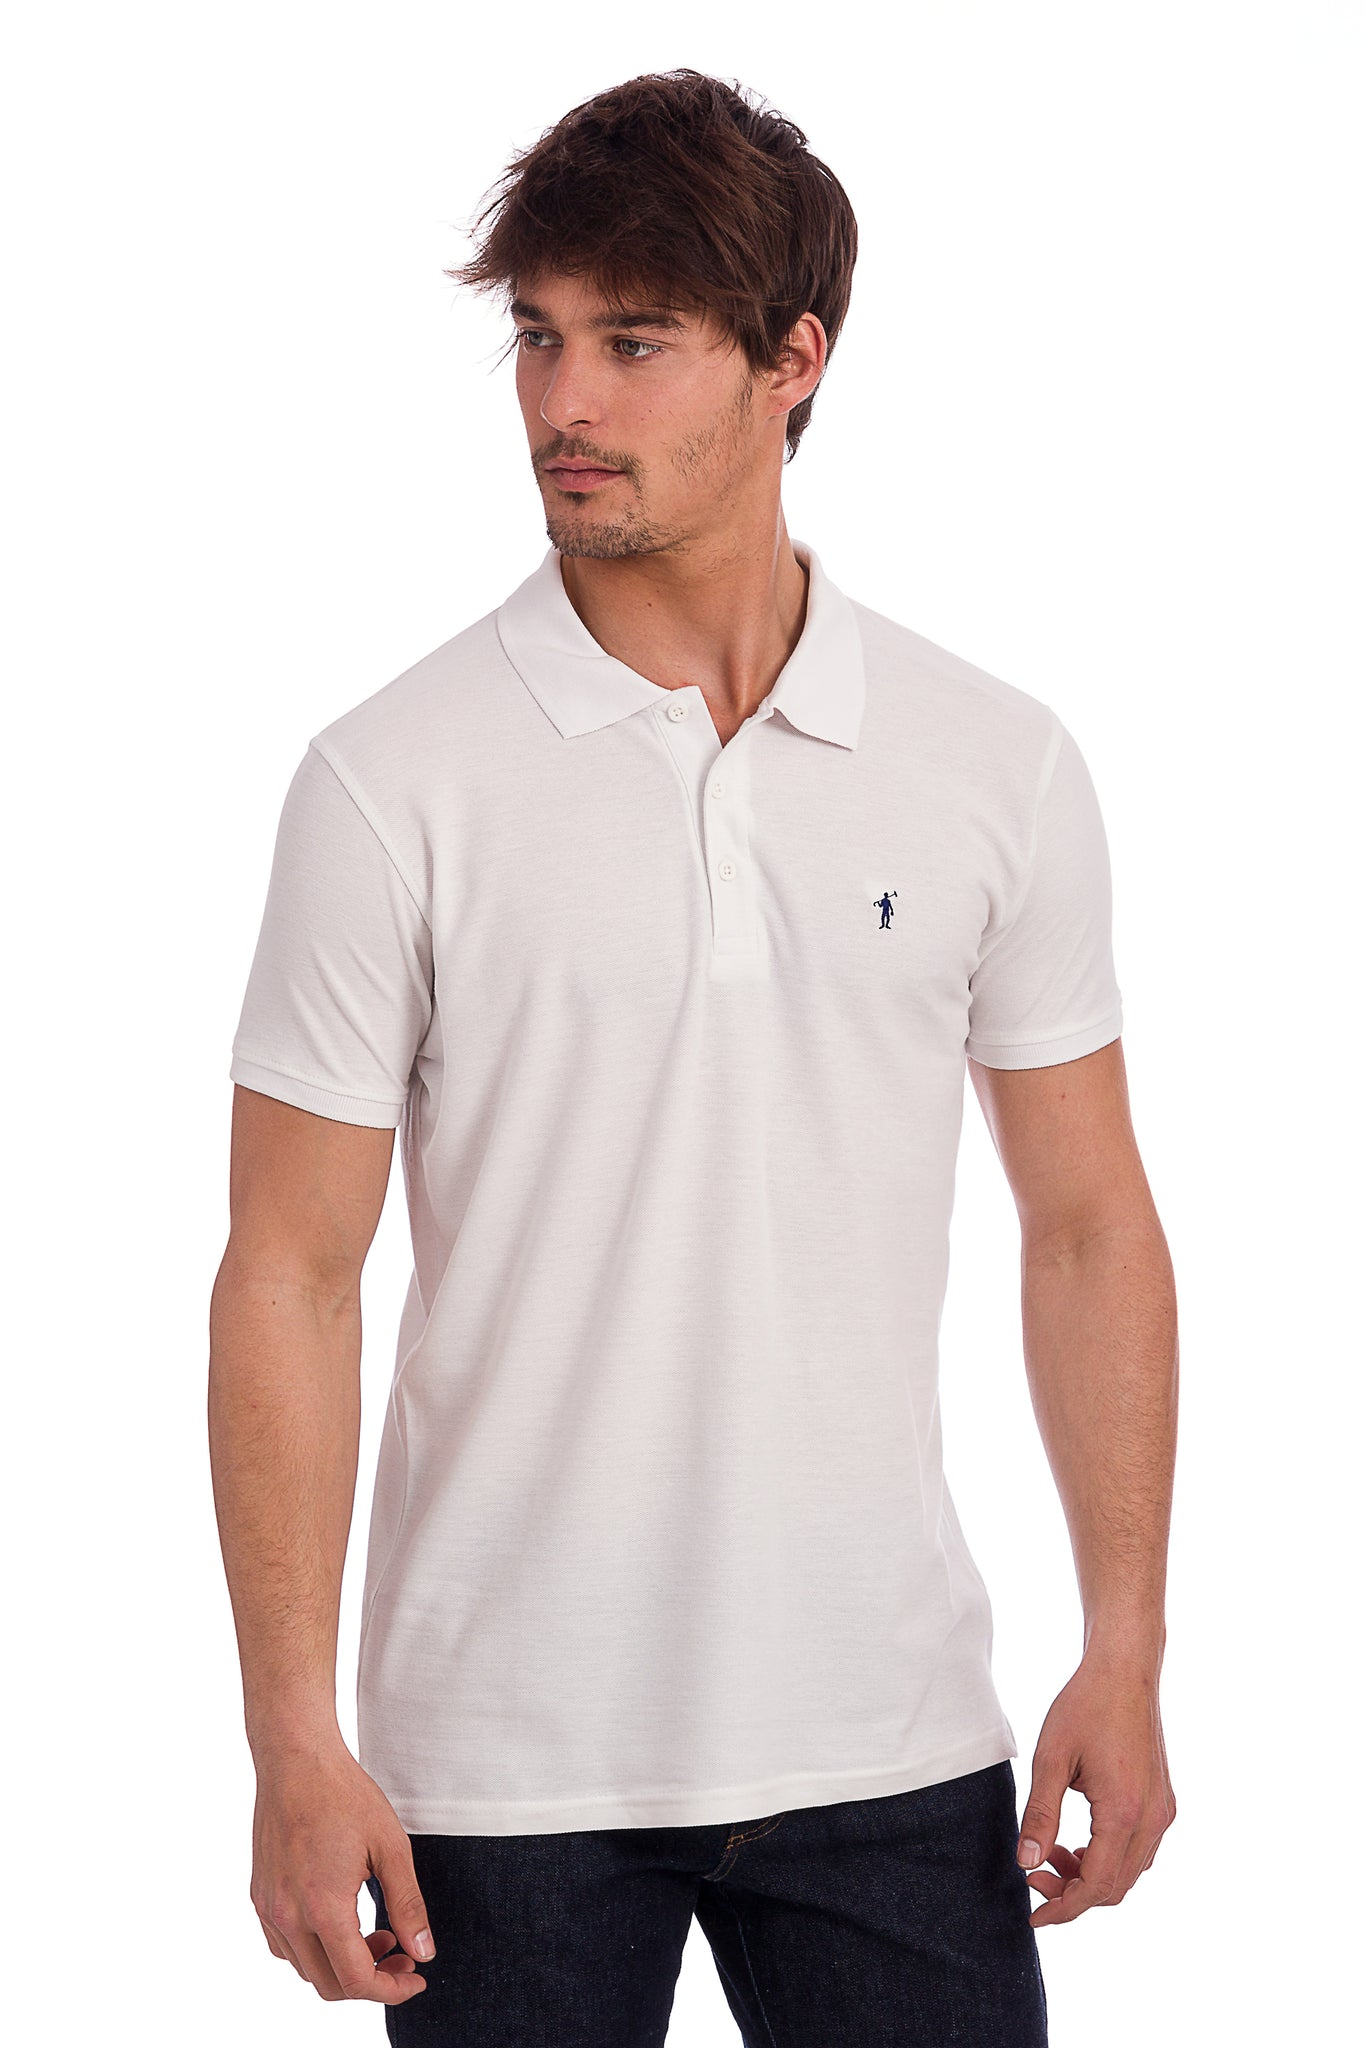 Polo blanco con logo bordado